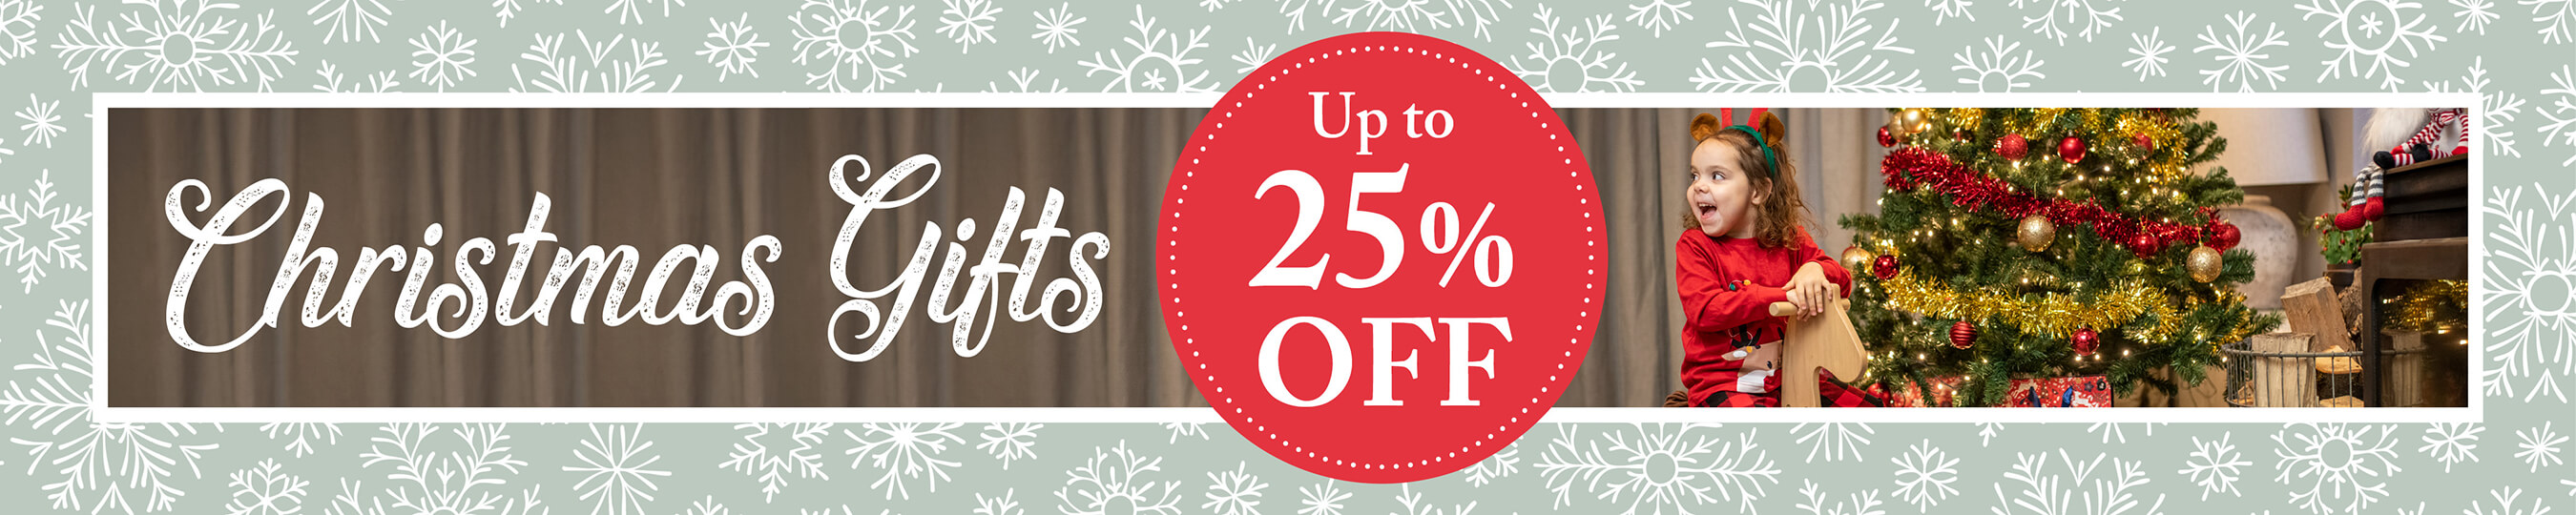 AU_Christmas_Gifts_Sale_DESKTOP_CATEGORY_BANNER_December_2020__2x